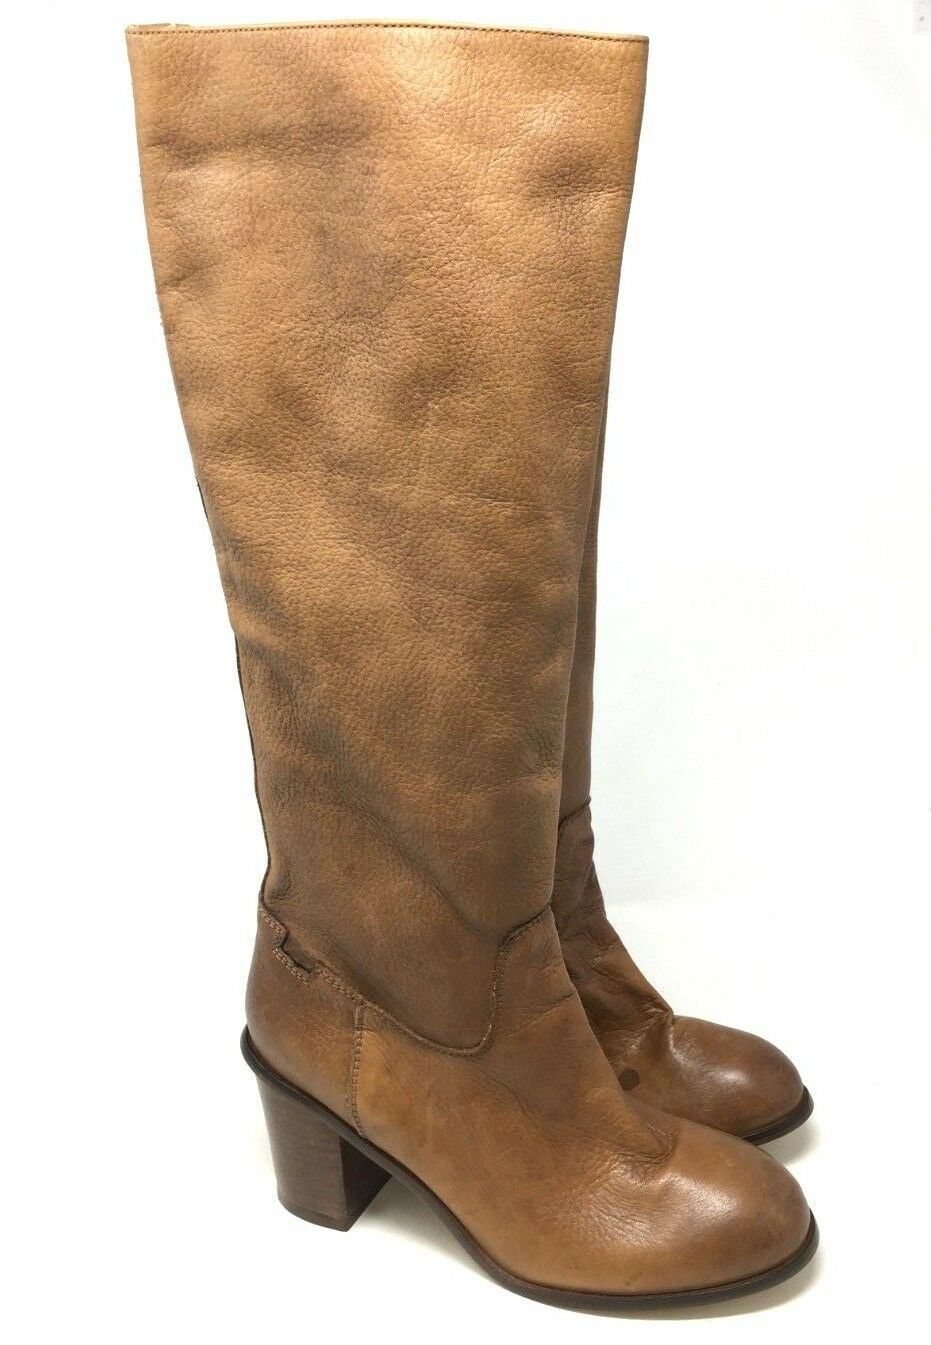 New Seychelles Knee High Camel  Leather Heel Boots Size 9